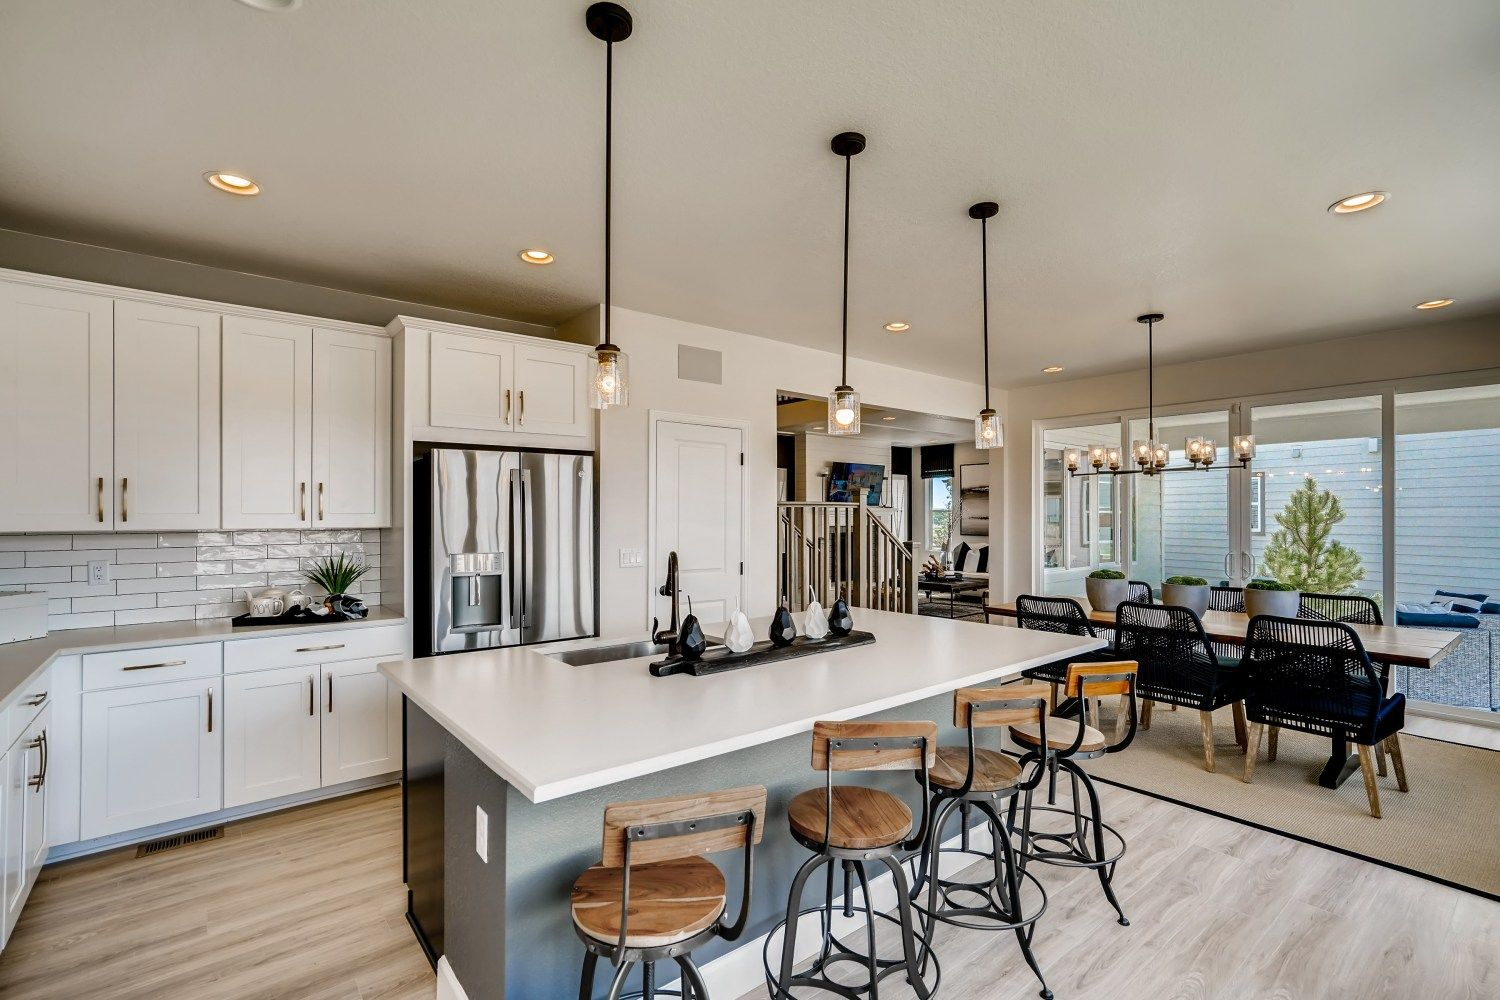 Kitchen featured in the Evergreen By Taylor Morrison in Denver, CO